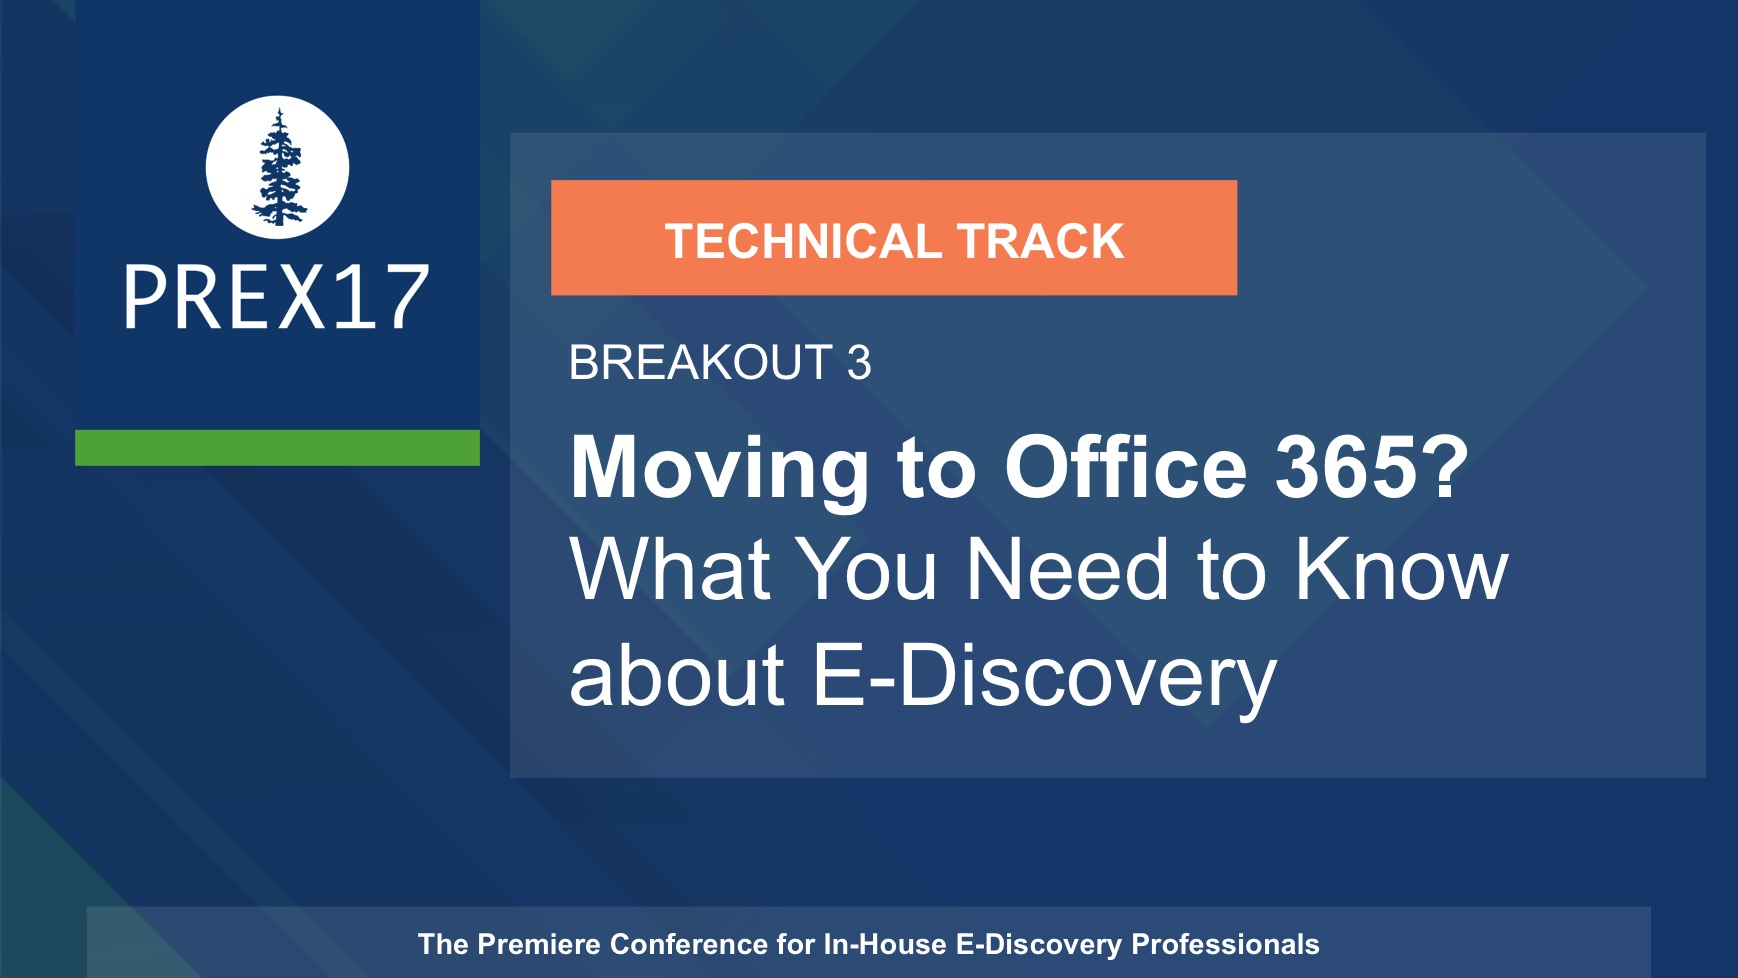 (Breakout 3 - Technical) Moving to Office 365? What You Need to Know about E-Discovery